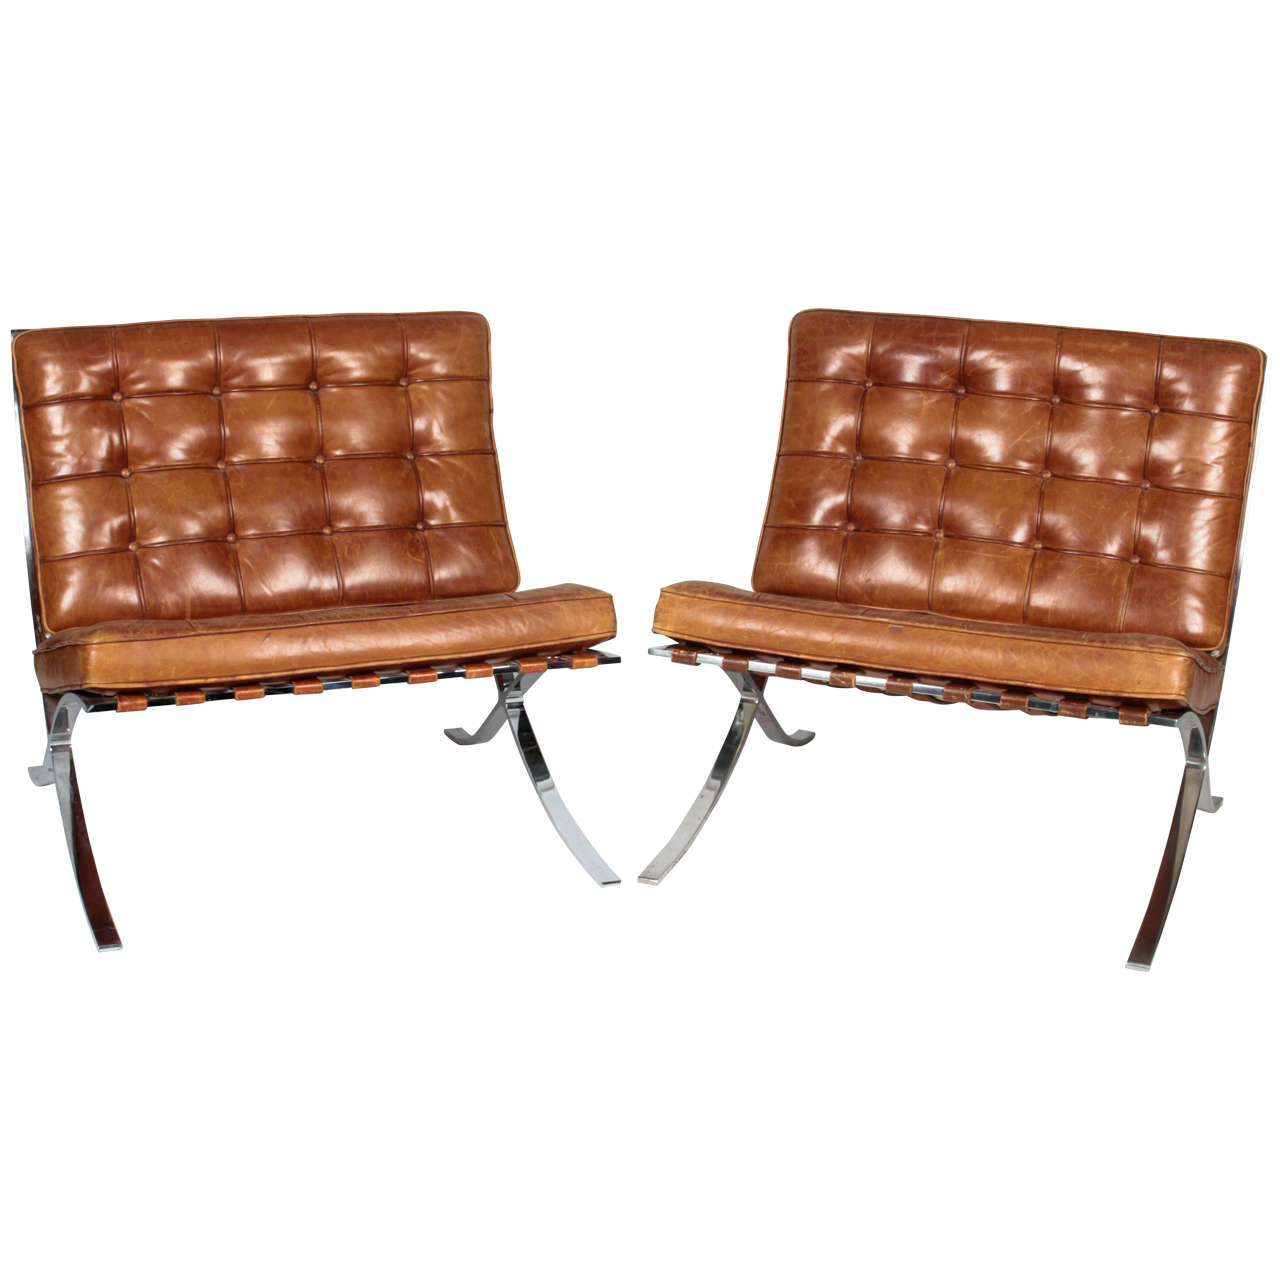 original barcelona chairs by mies van der rohe for knoll at 1stdibs